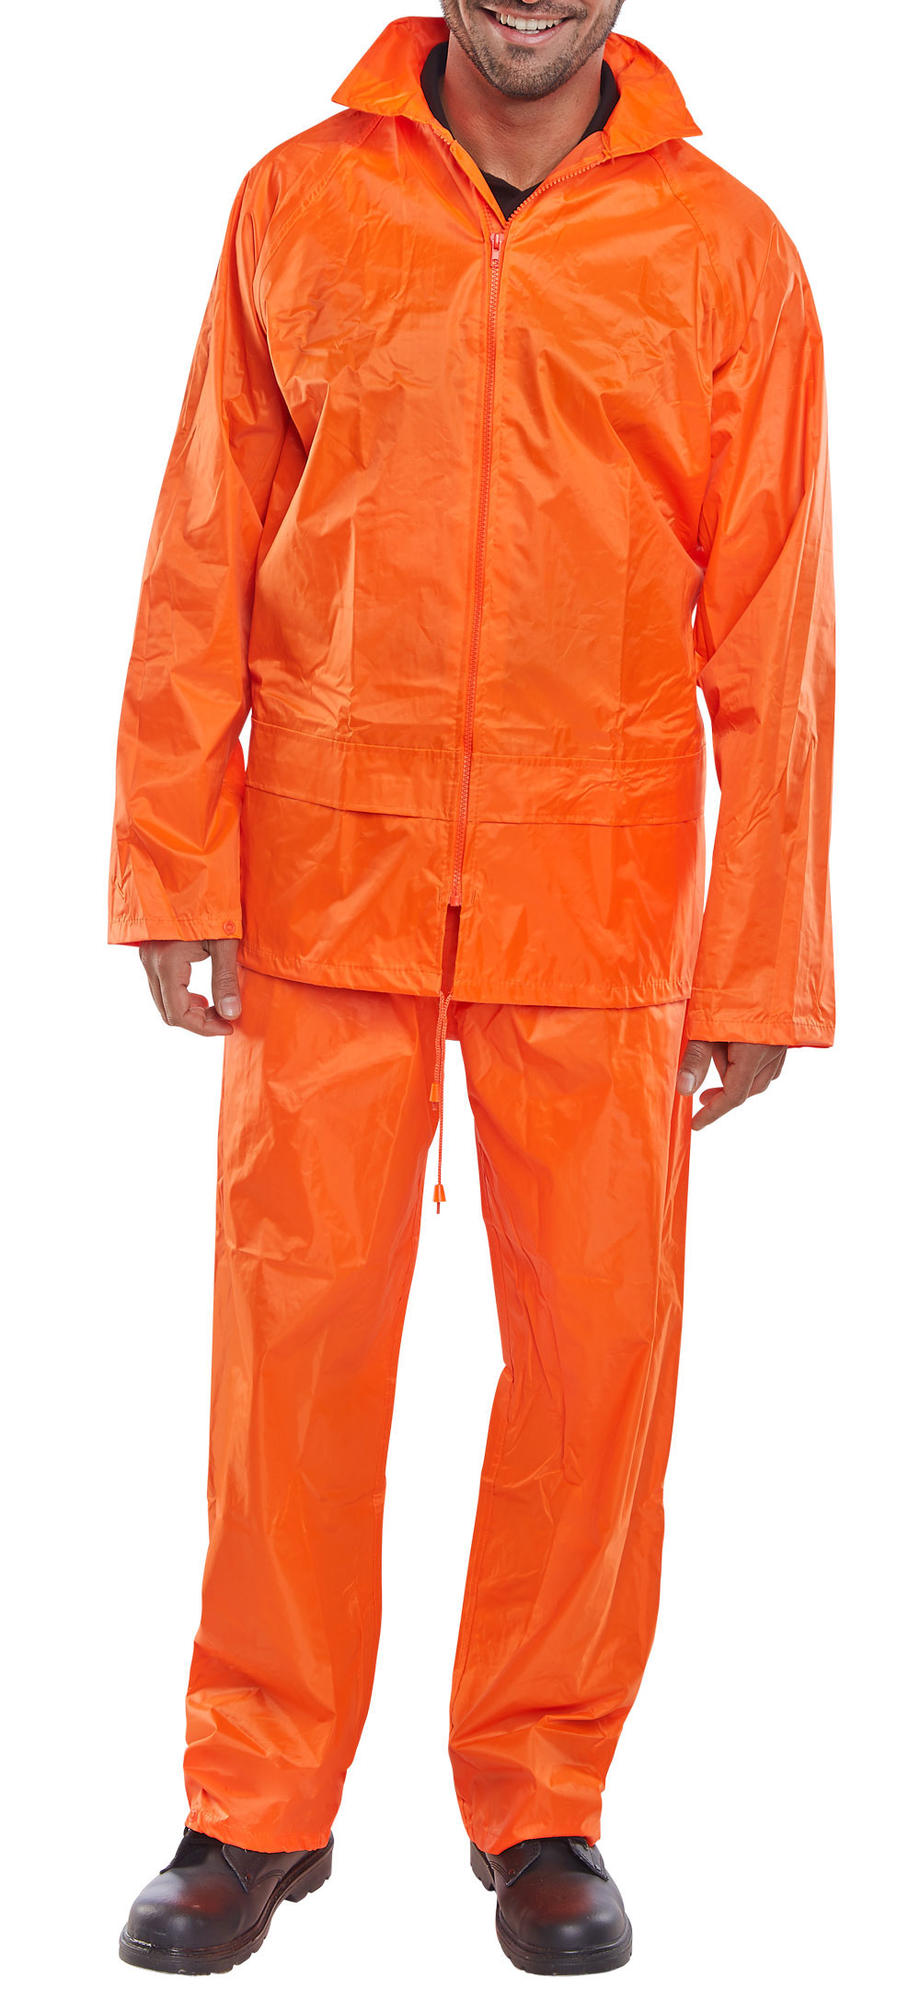 Beeswift NBDS waterproof suit